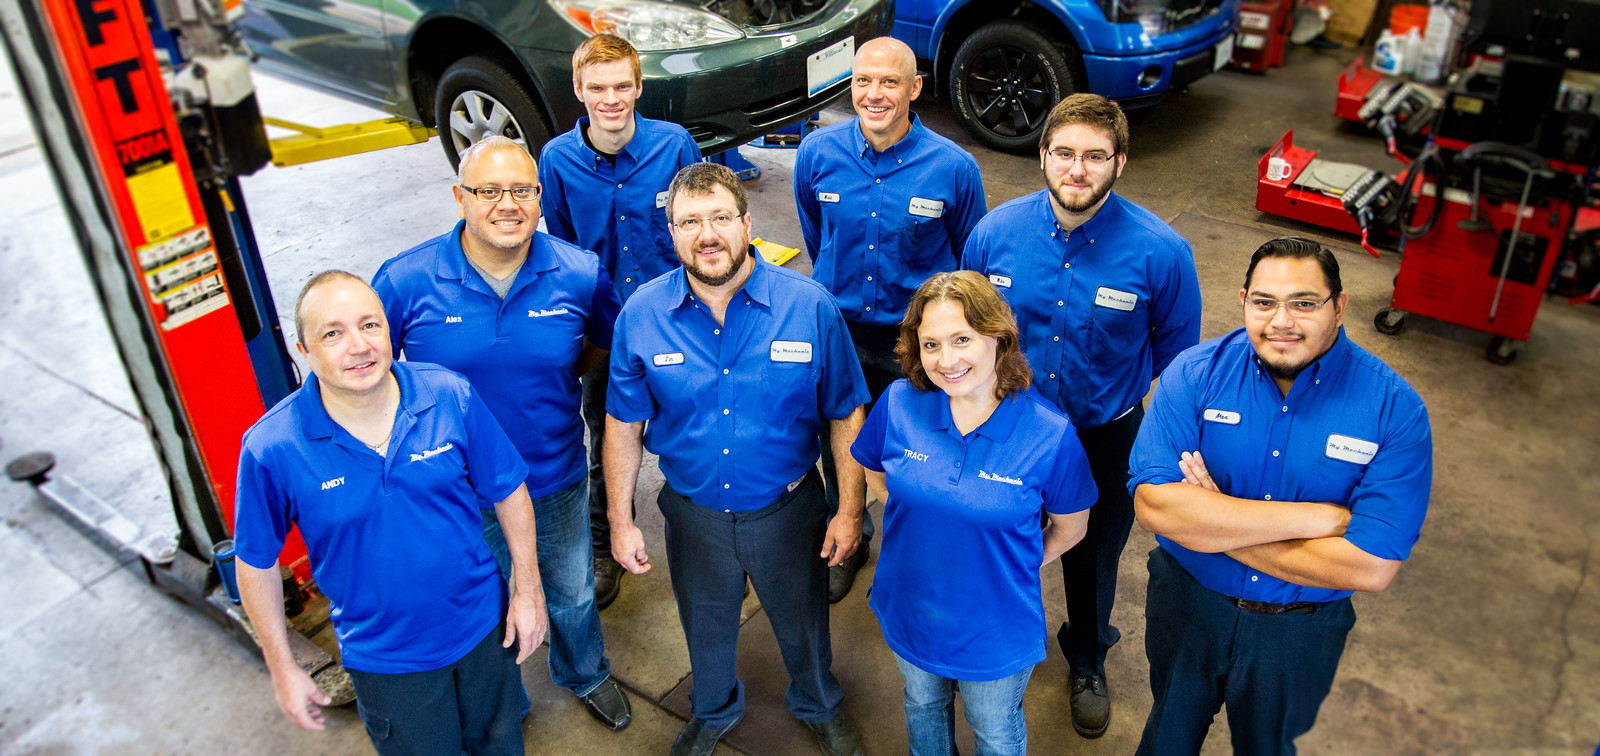 The auto service repair team at My Mechanic in Elmhurst, IL